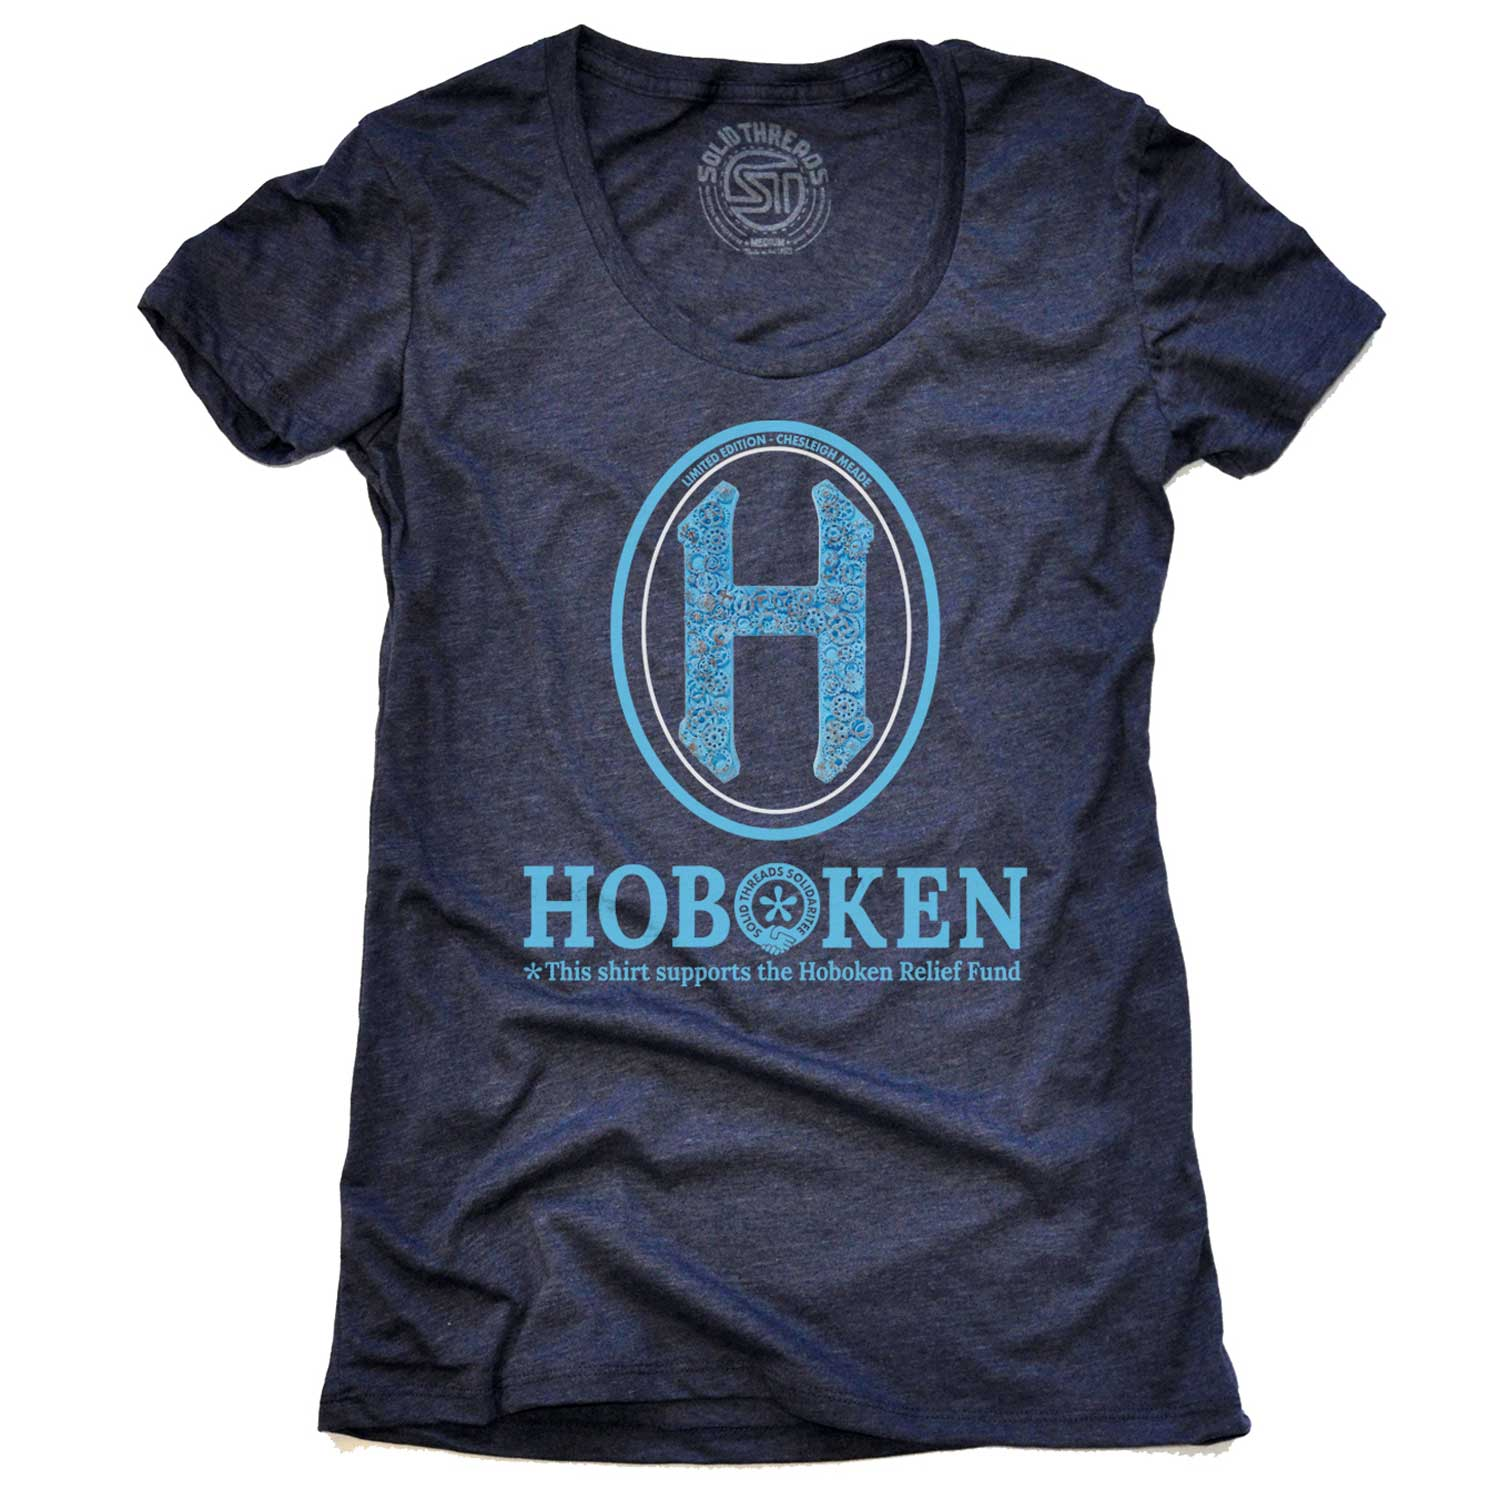 "Women's Hoboken ""H"" Relief Fund Limited Edition scoopneck tee-shirt with cool, retro Chesleigh Meade graphic 